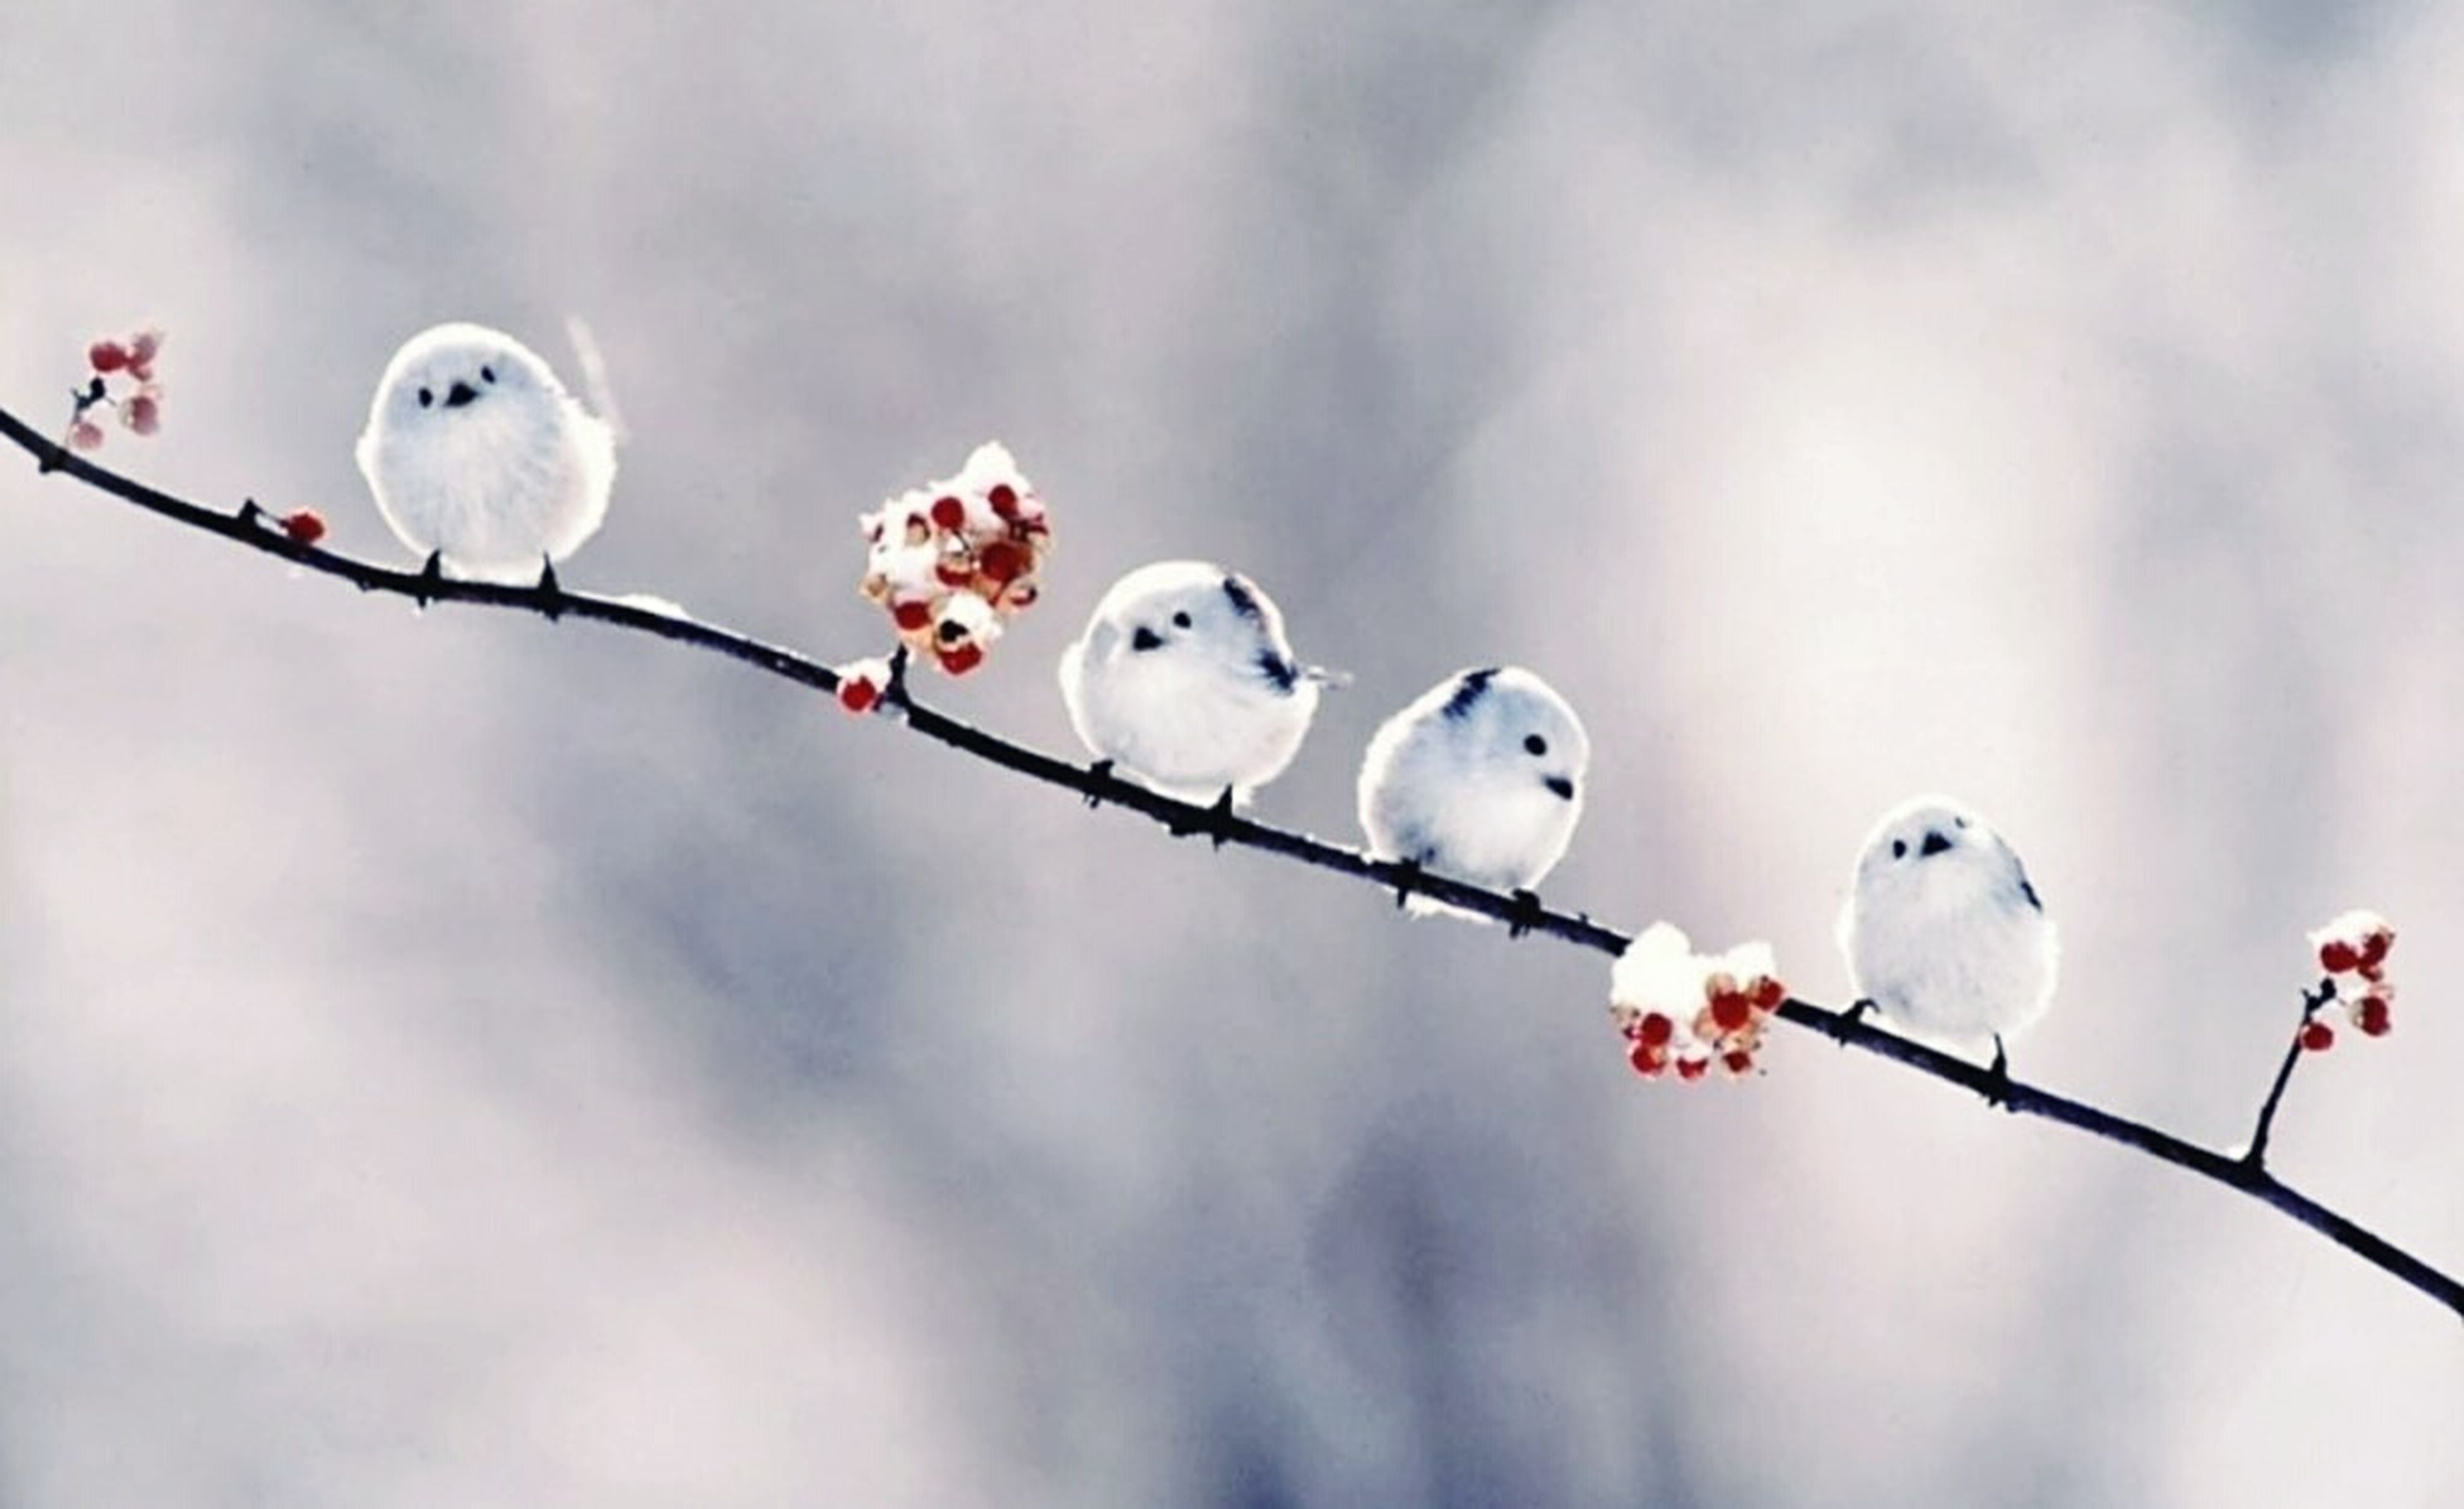 bird, animal themes, low angle view, perching, animals in the wild, wildlife, white color, sky, branch, focus on foreground, nature, hanging, day, outdoors, no people, close-up, tree, two animals, cloud - sky, one animal